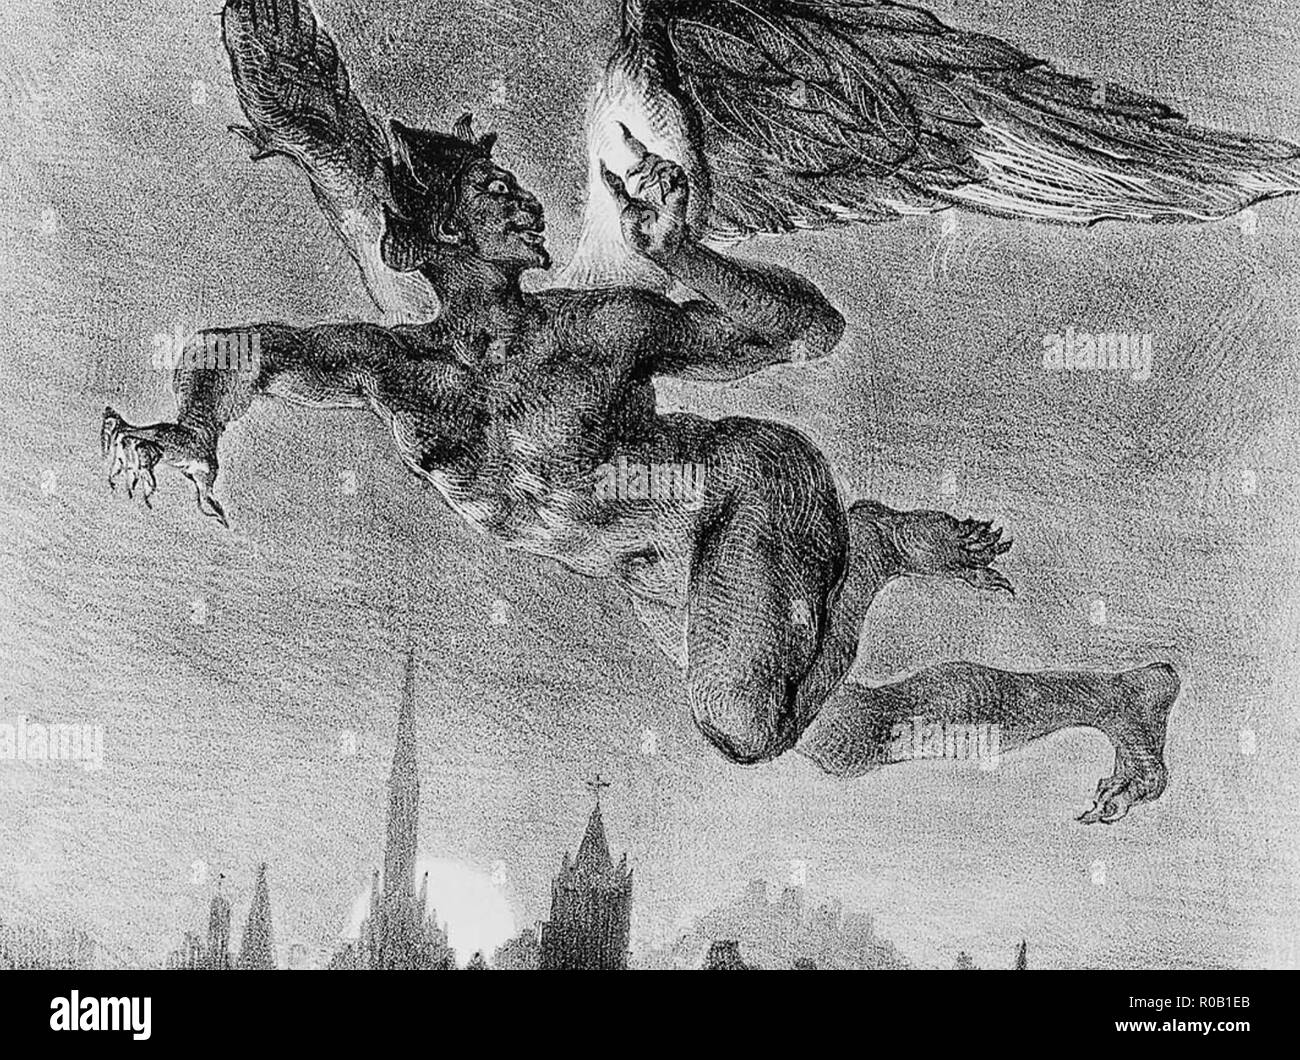 MEPHISTOPELES  in an engraving by Gustav Dore in 1837 - Stock Image